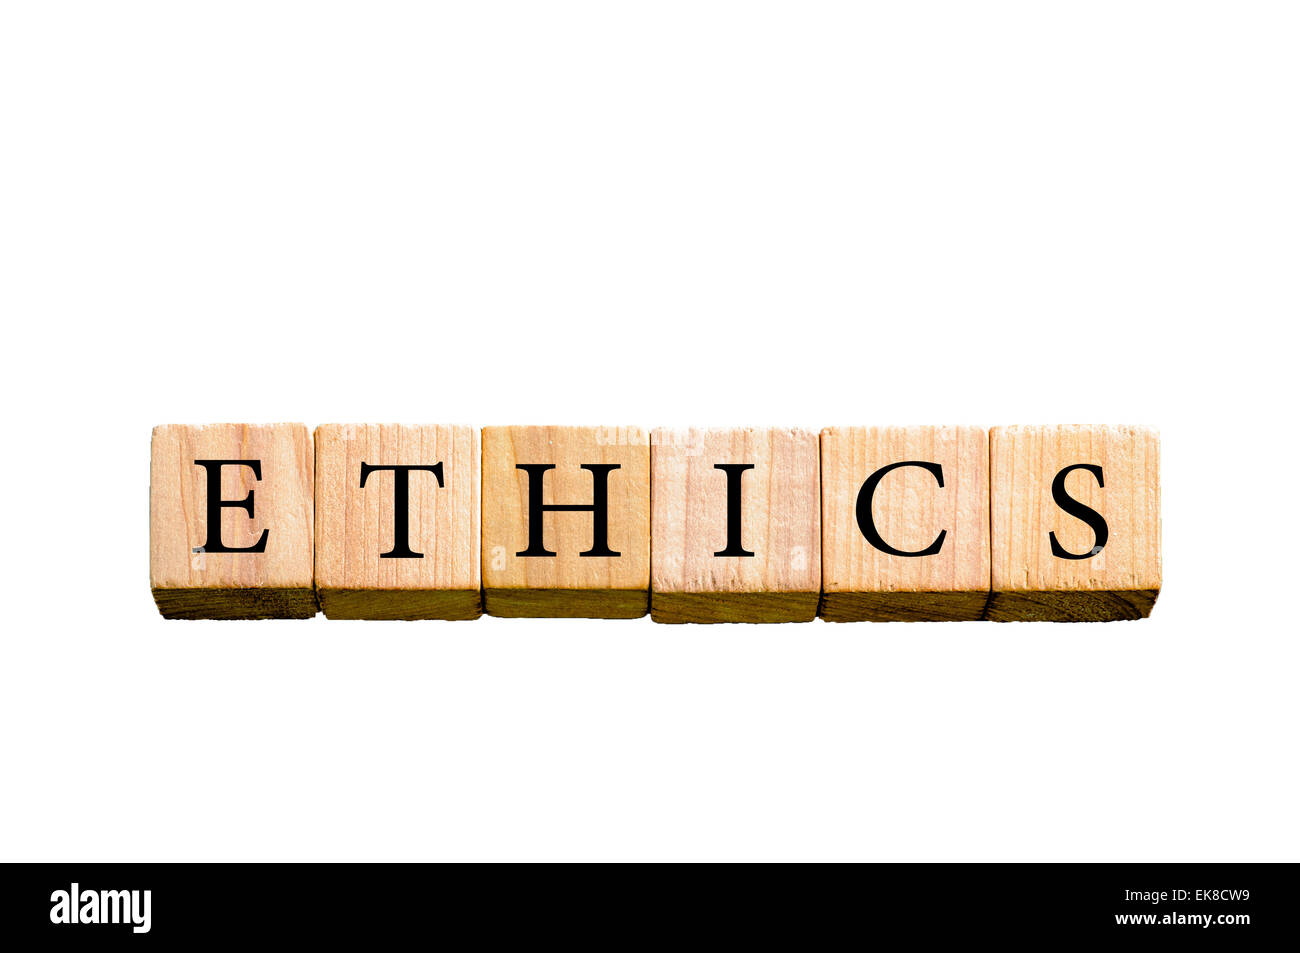 Word ETHICS. Wooden small cubes with letters isolated on white background with copy space available. Concept image. - Stock Image